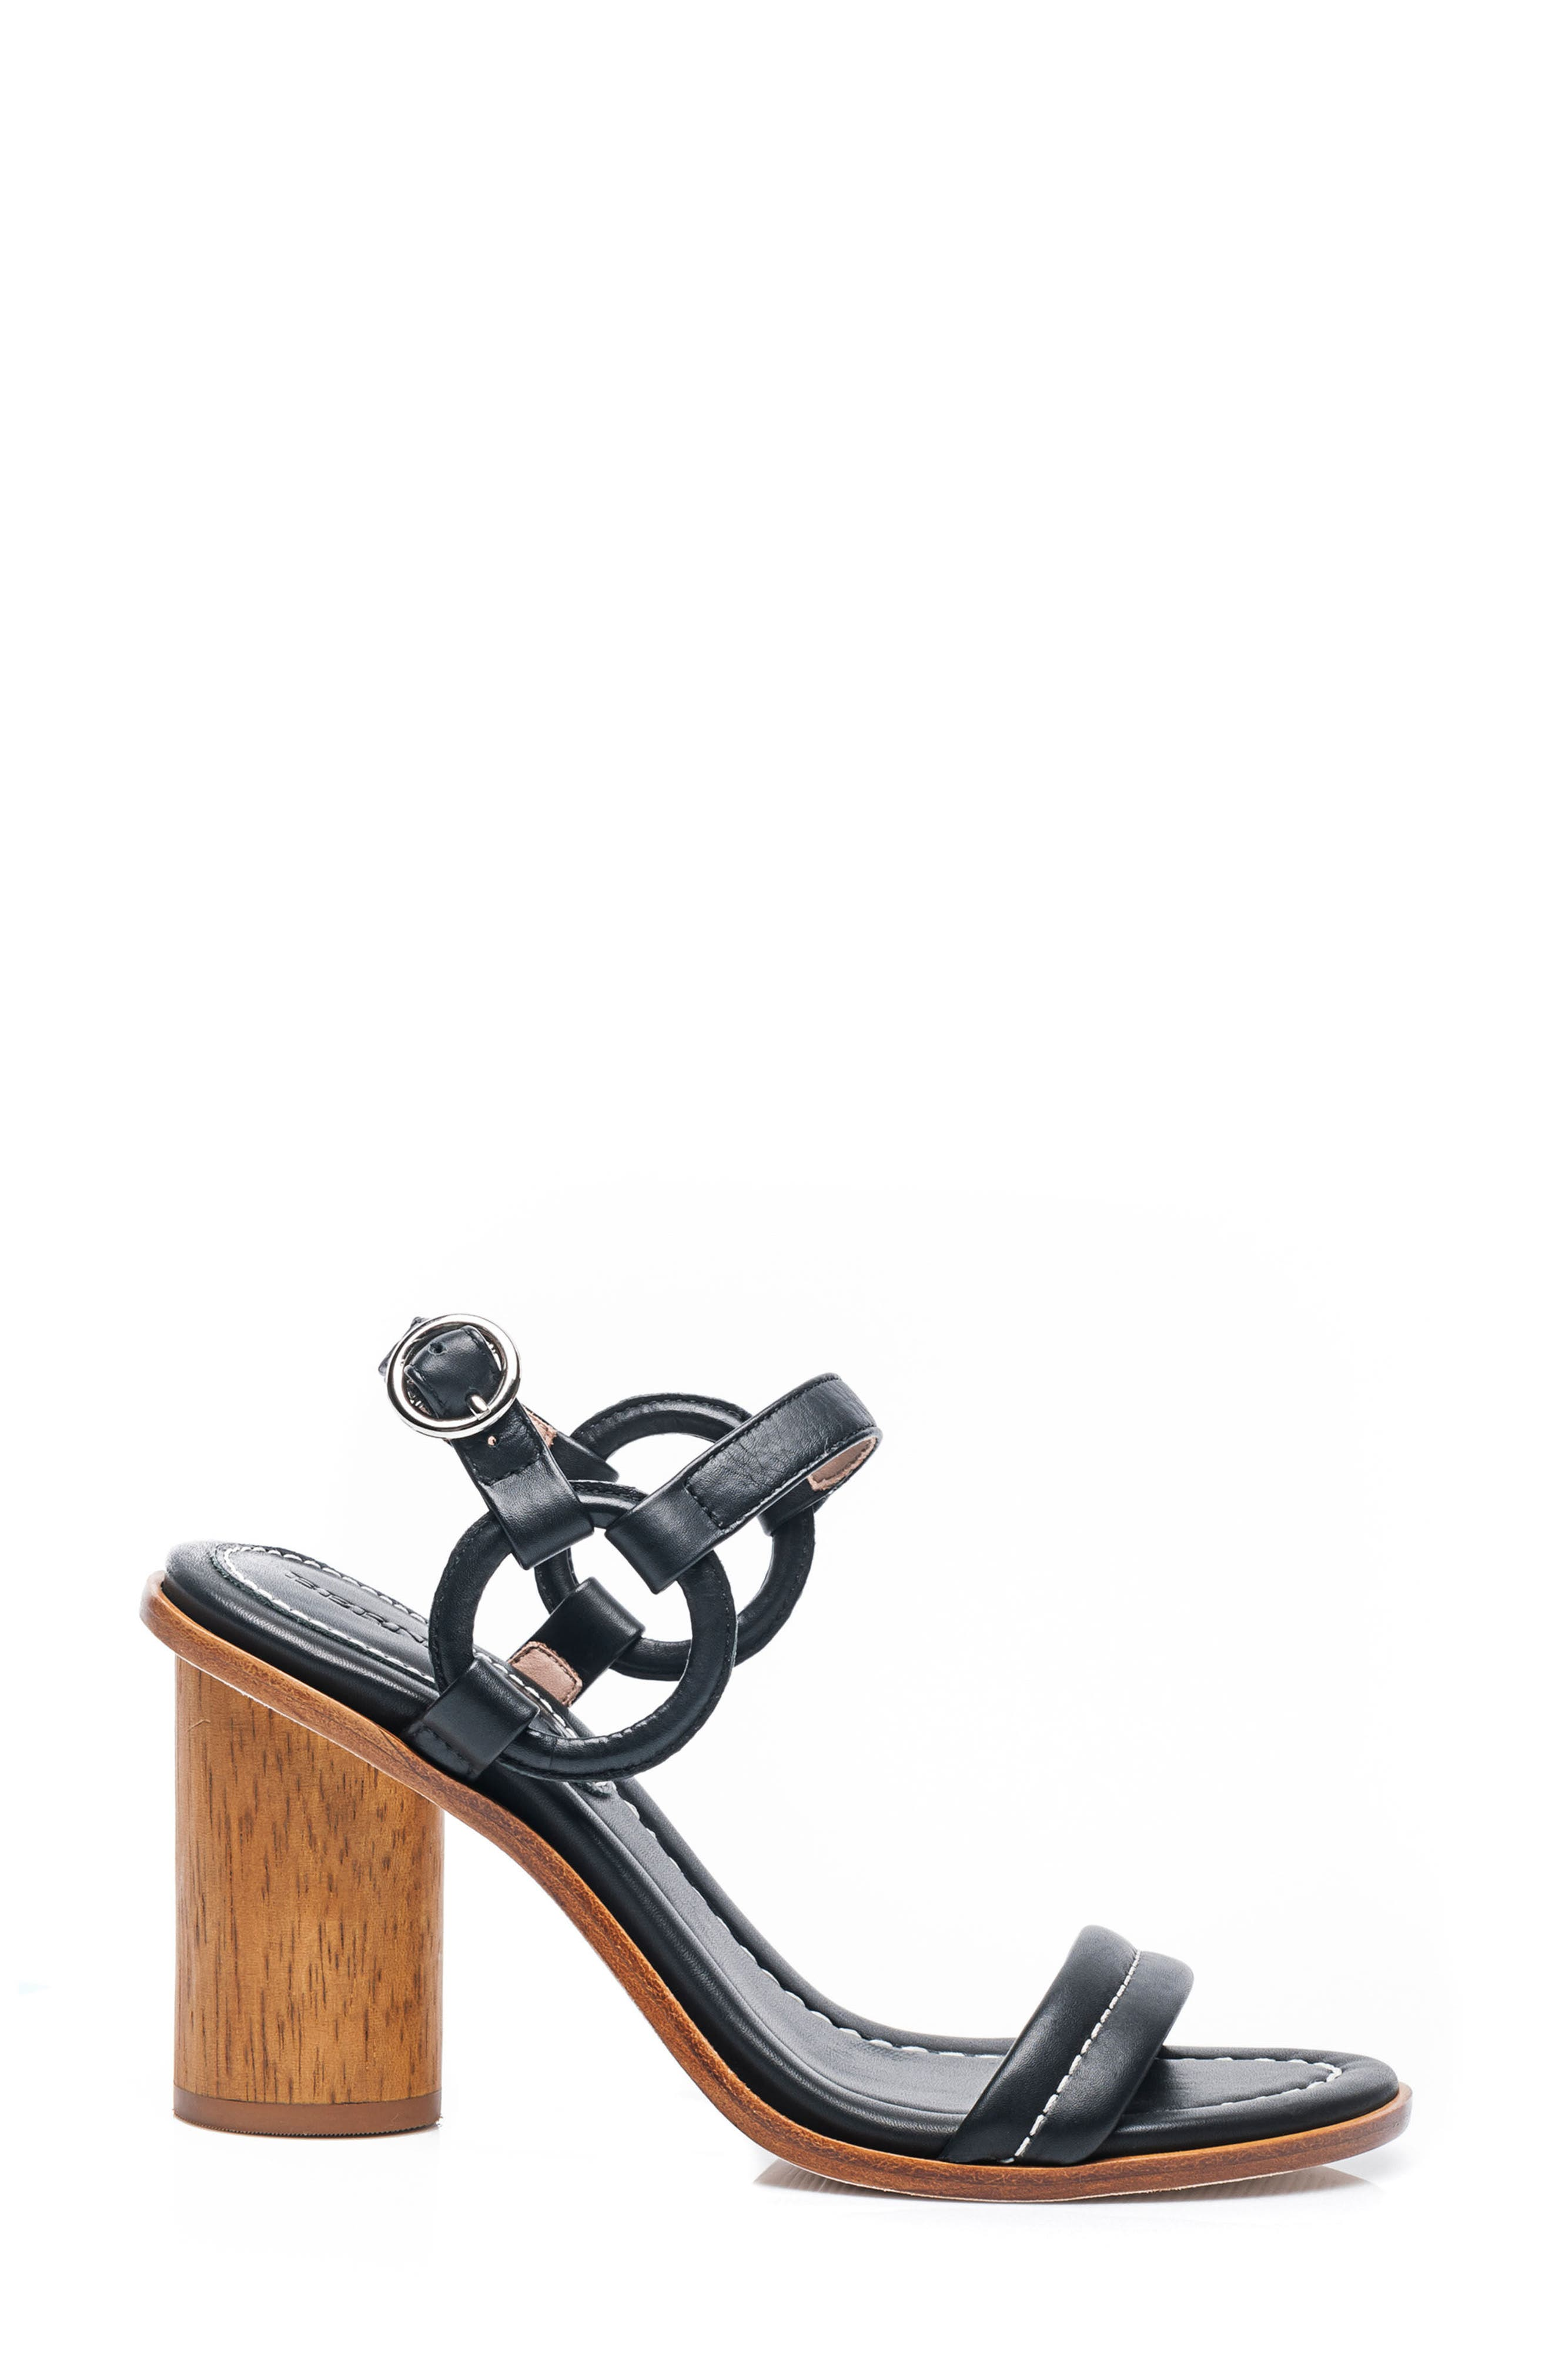 Bernardo Harlow Ankle Strap Sandal,                             Alternate thumbnail 3, color,                             BLACK LEATHER